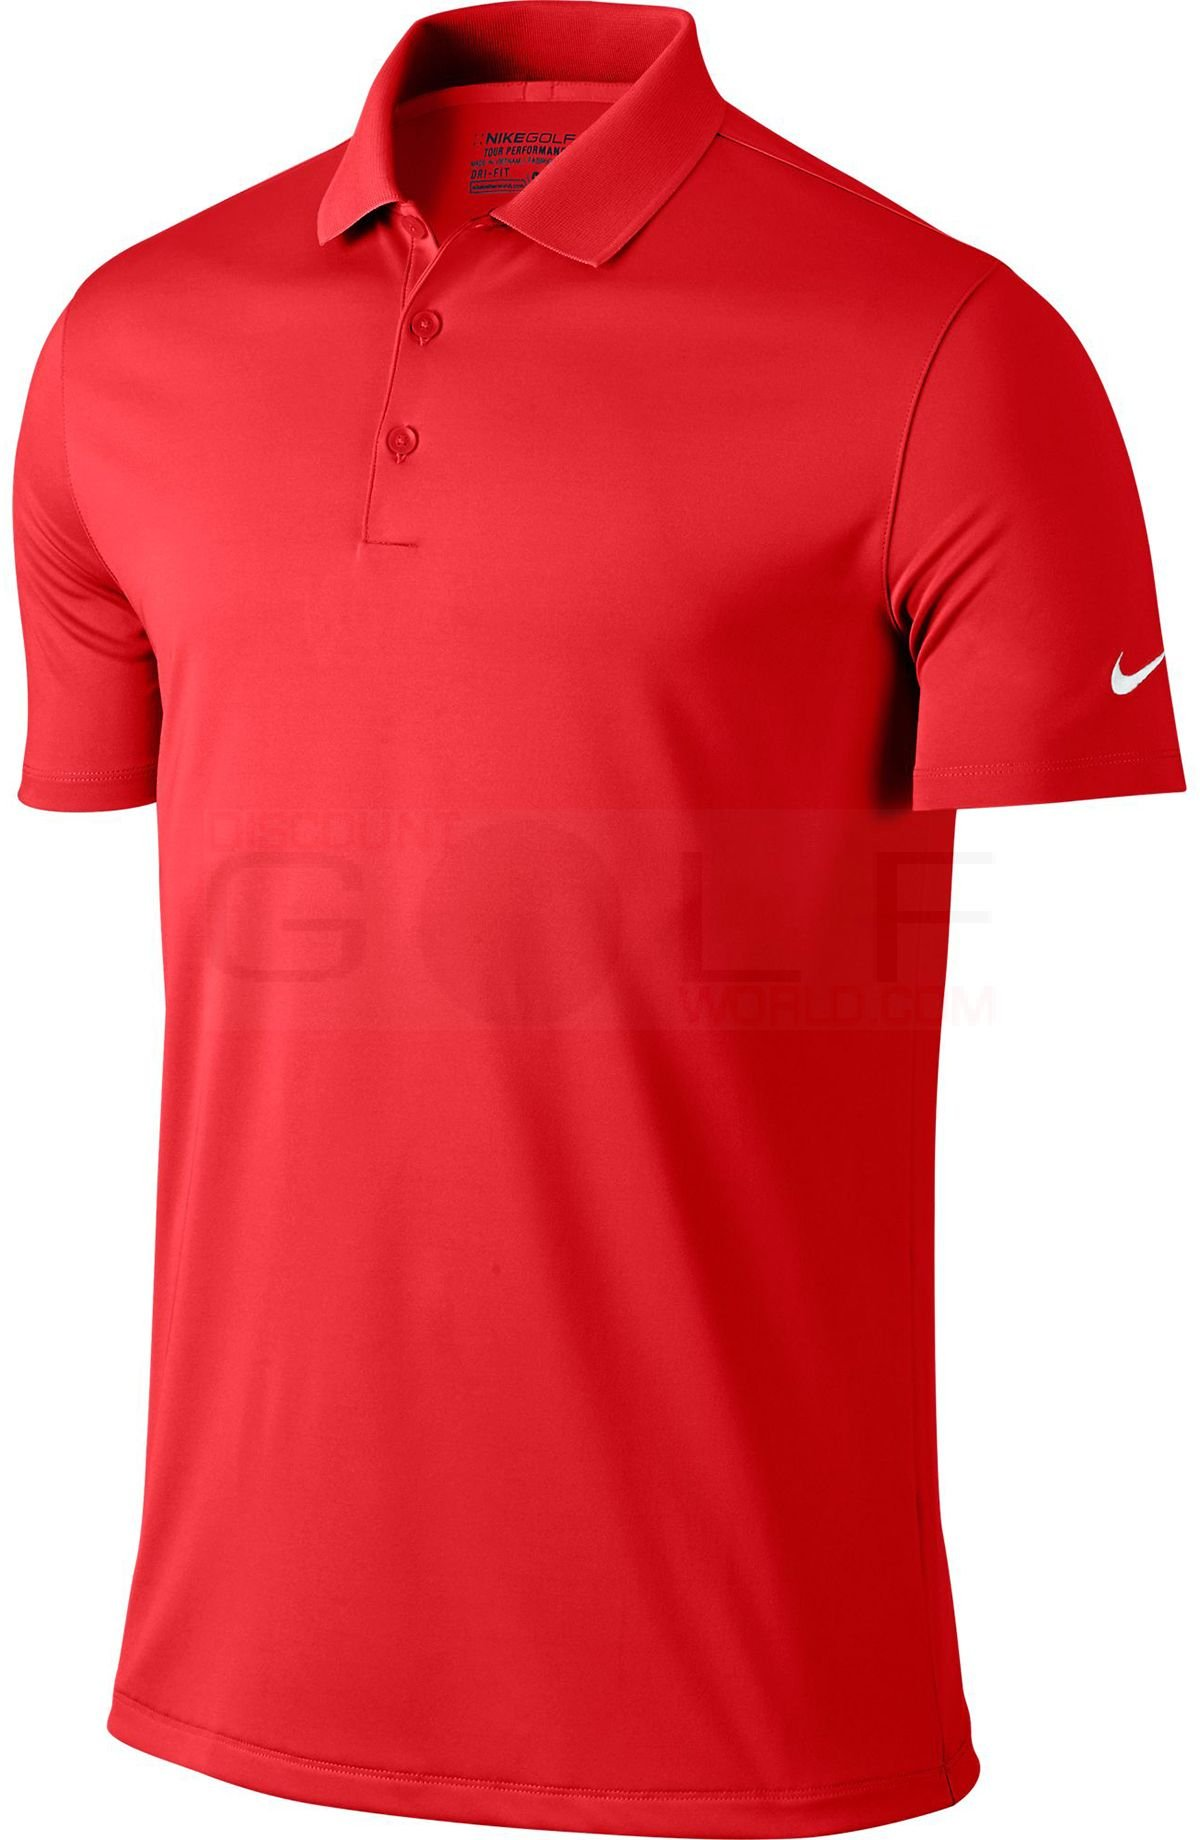 Nike Dri Fit Golf Polo 818050 657 Red Size Large